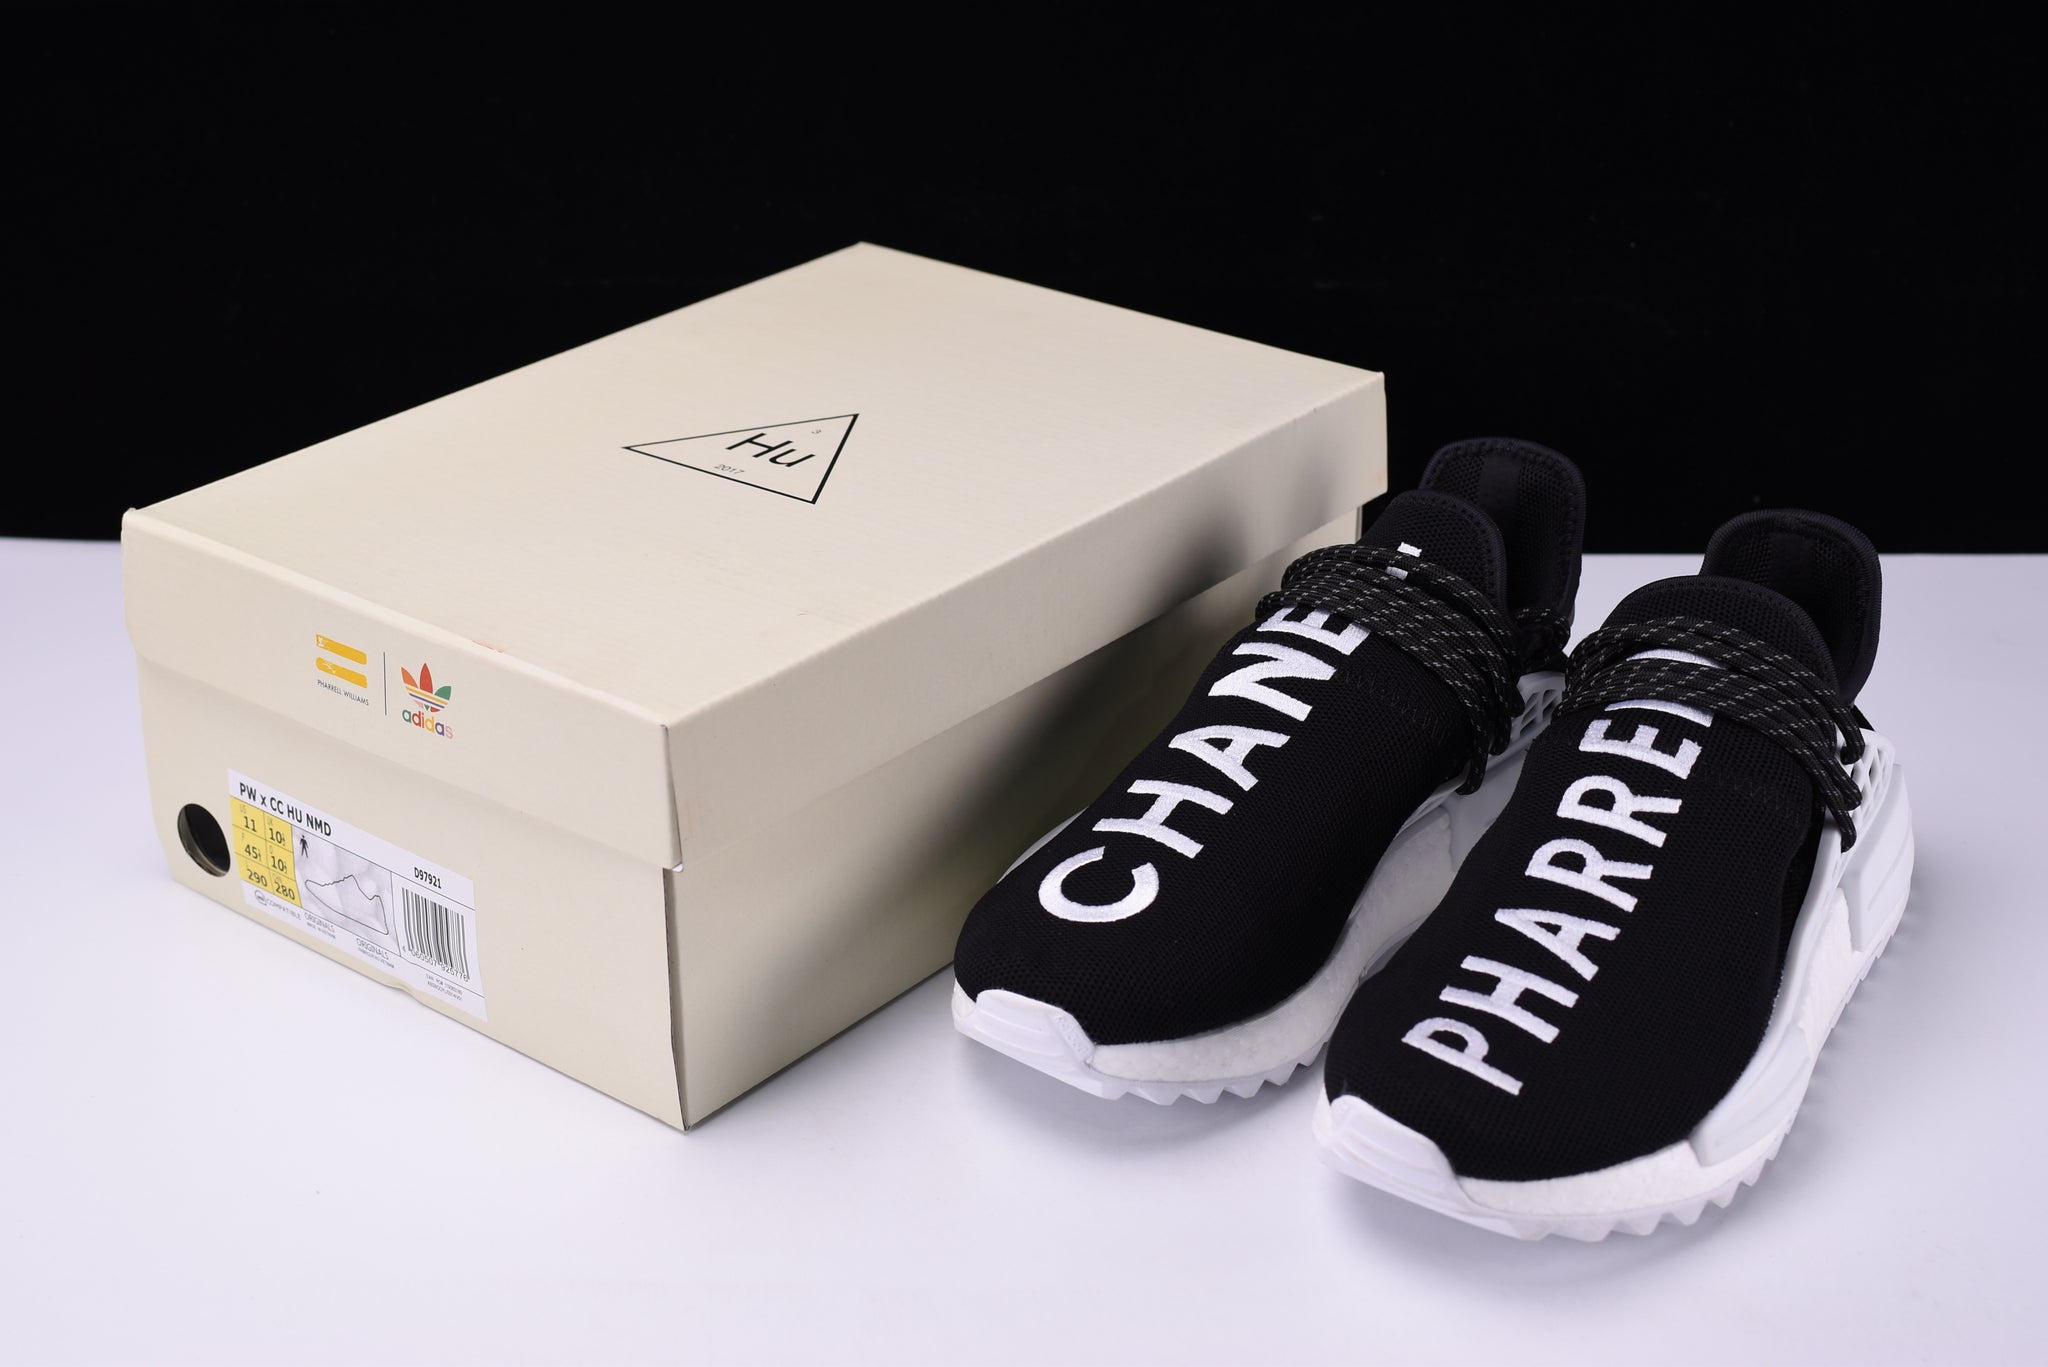 info for 432d6 0883c Adidas PW Human Race NMD HU Pharrell x Chanel Shoes Men's ...